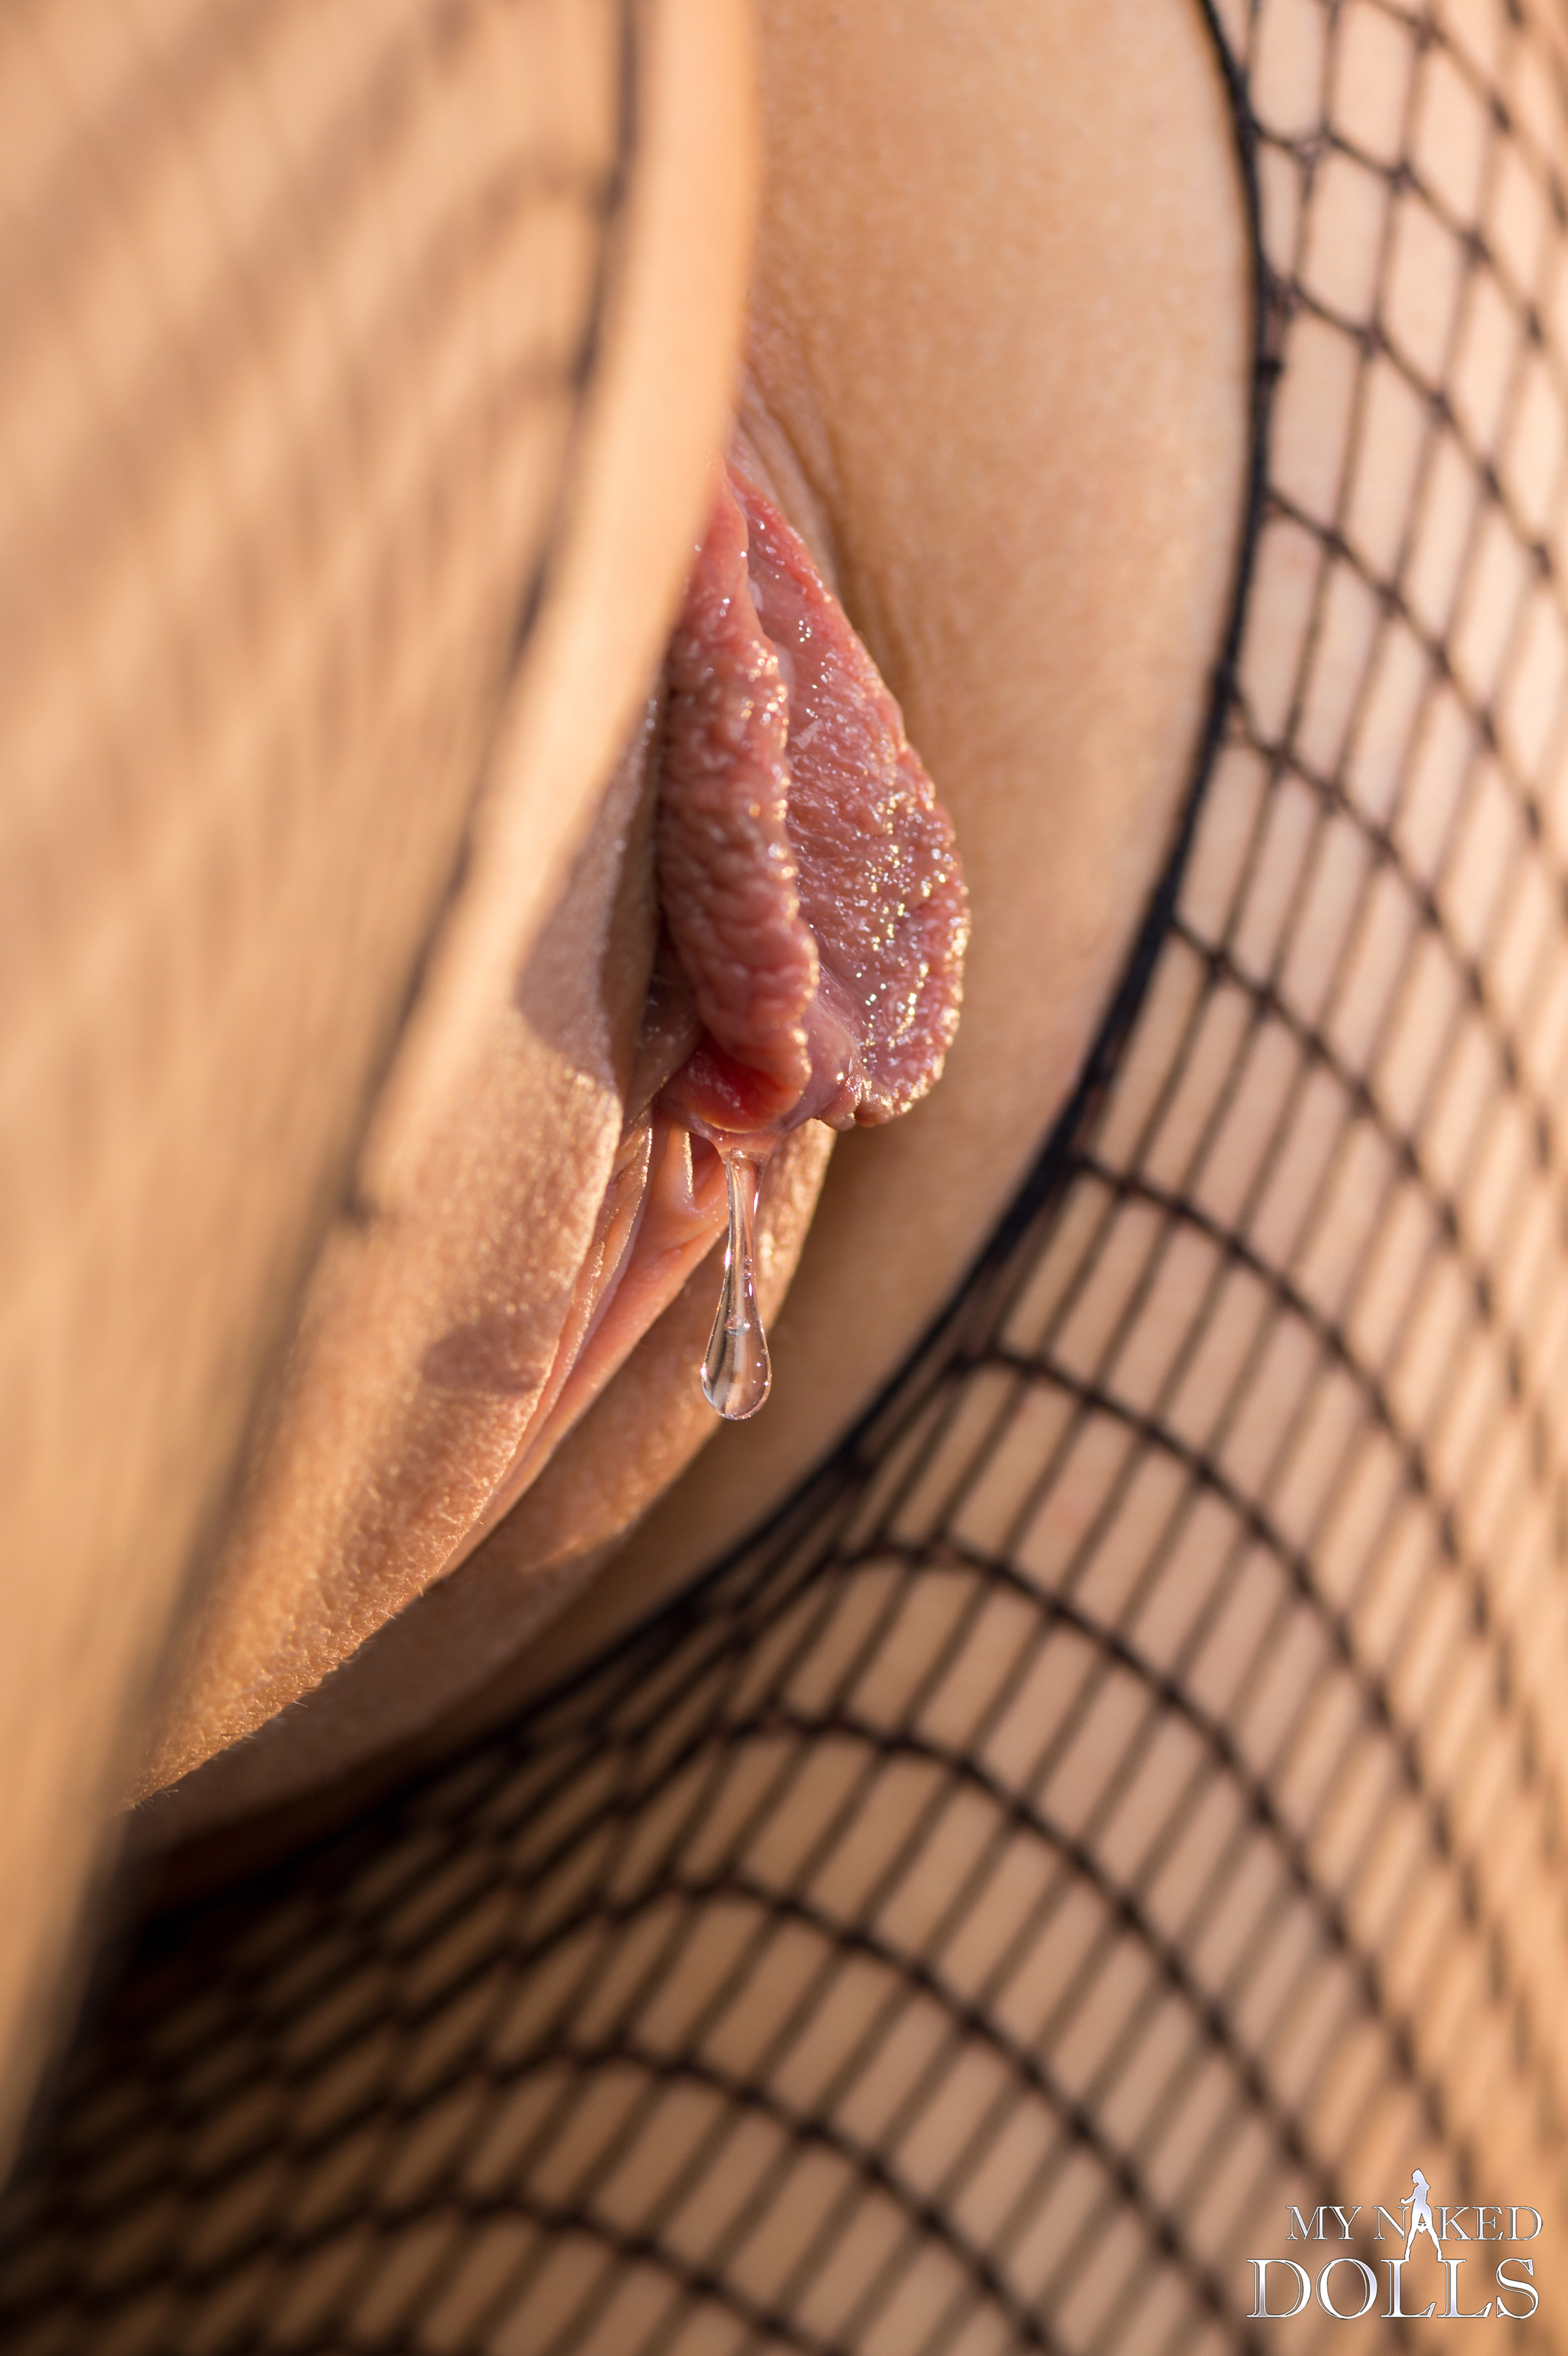 Sapphire's pussy juice almost dripping Porn Photo